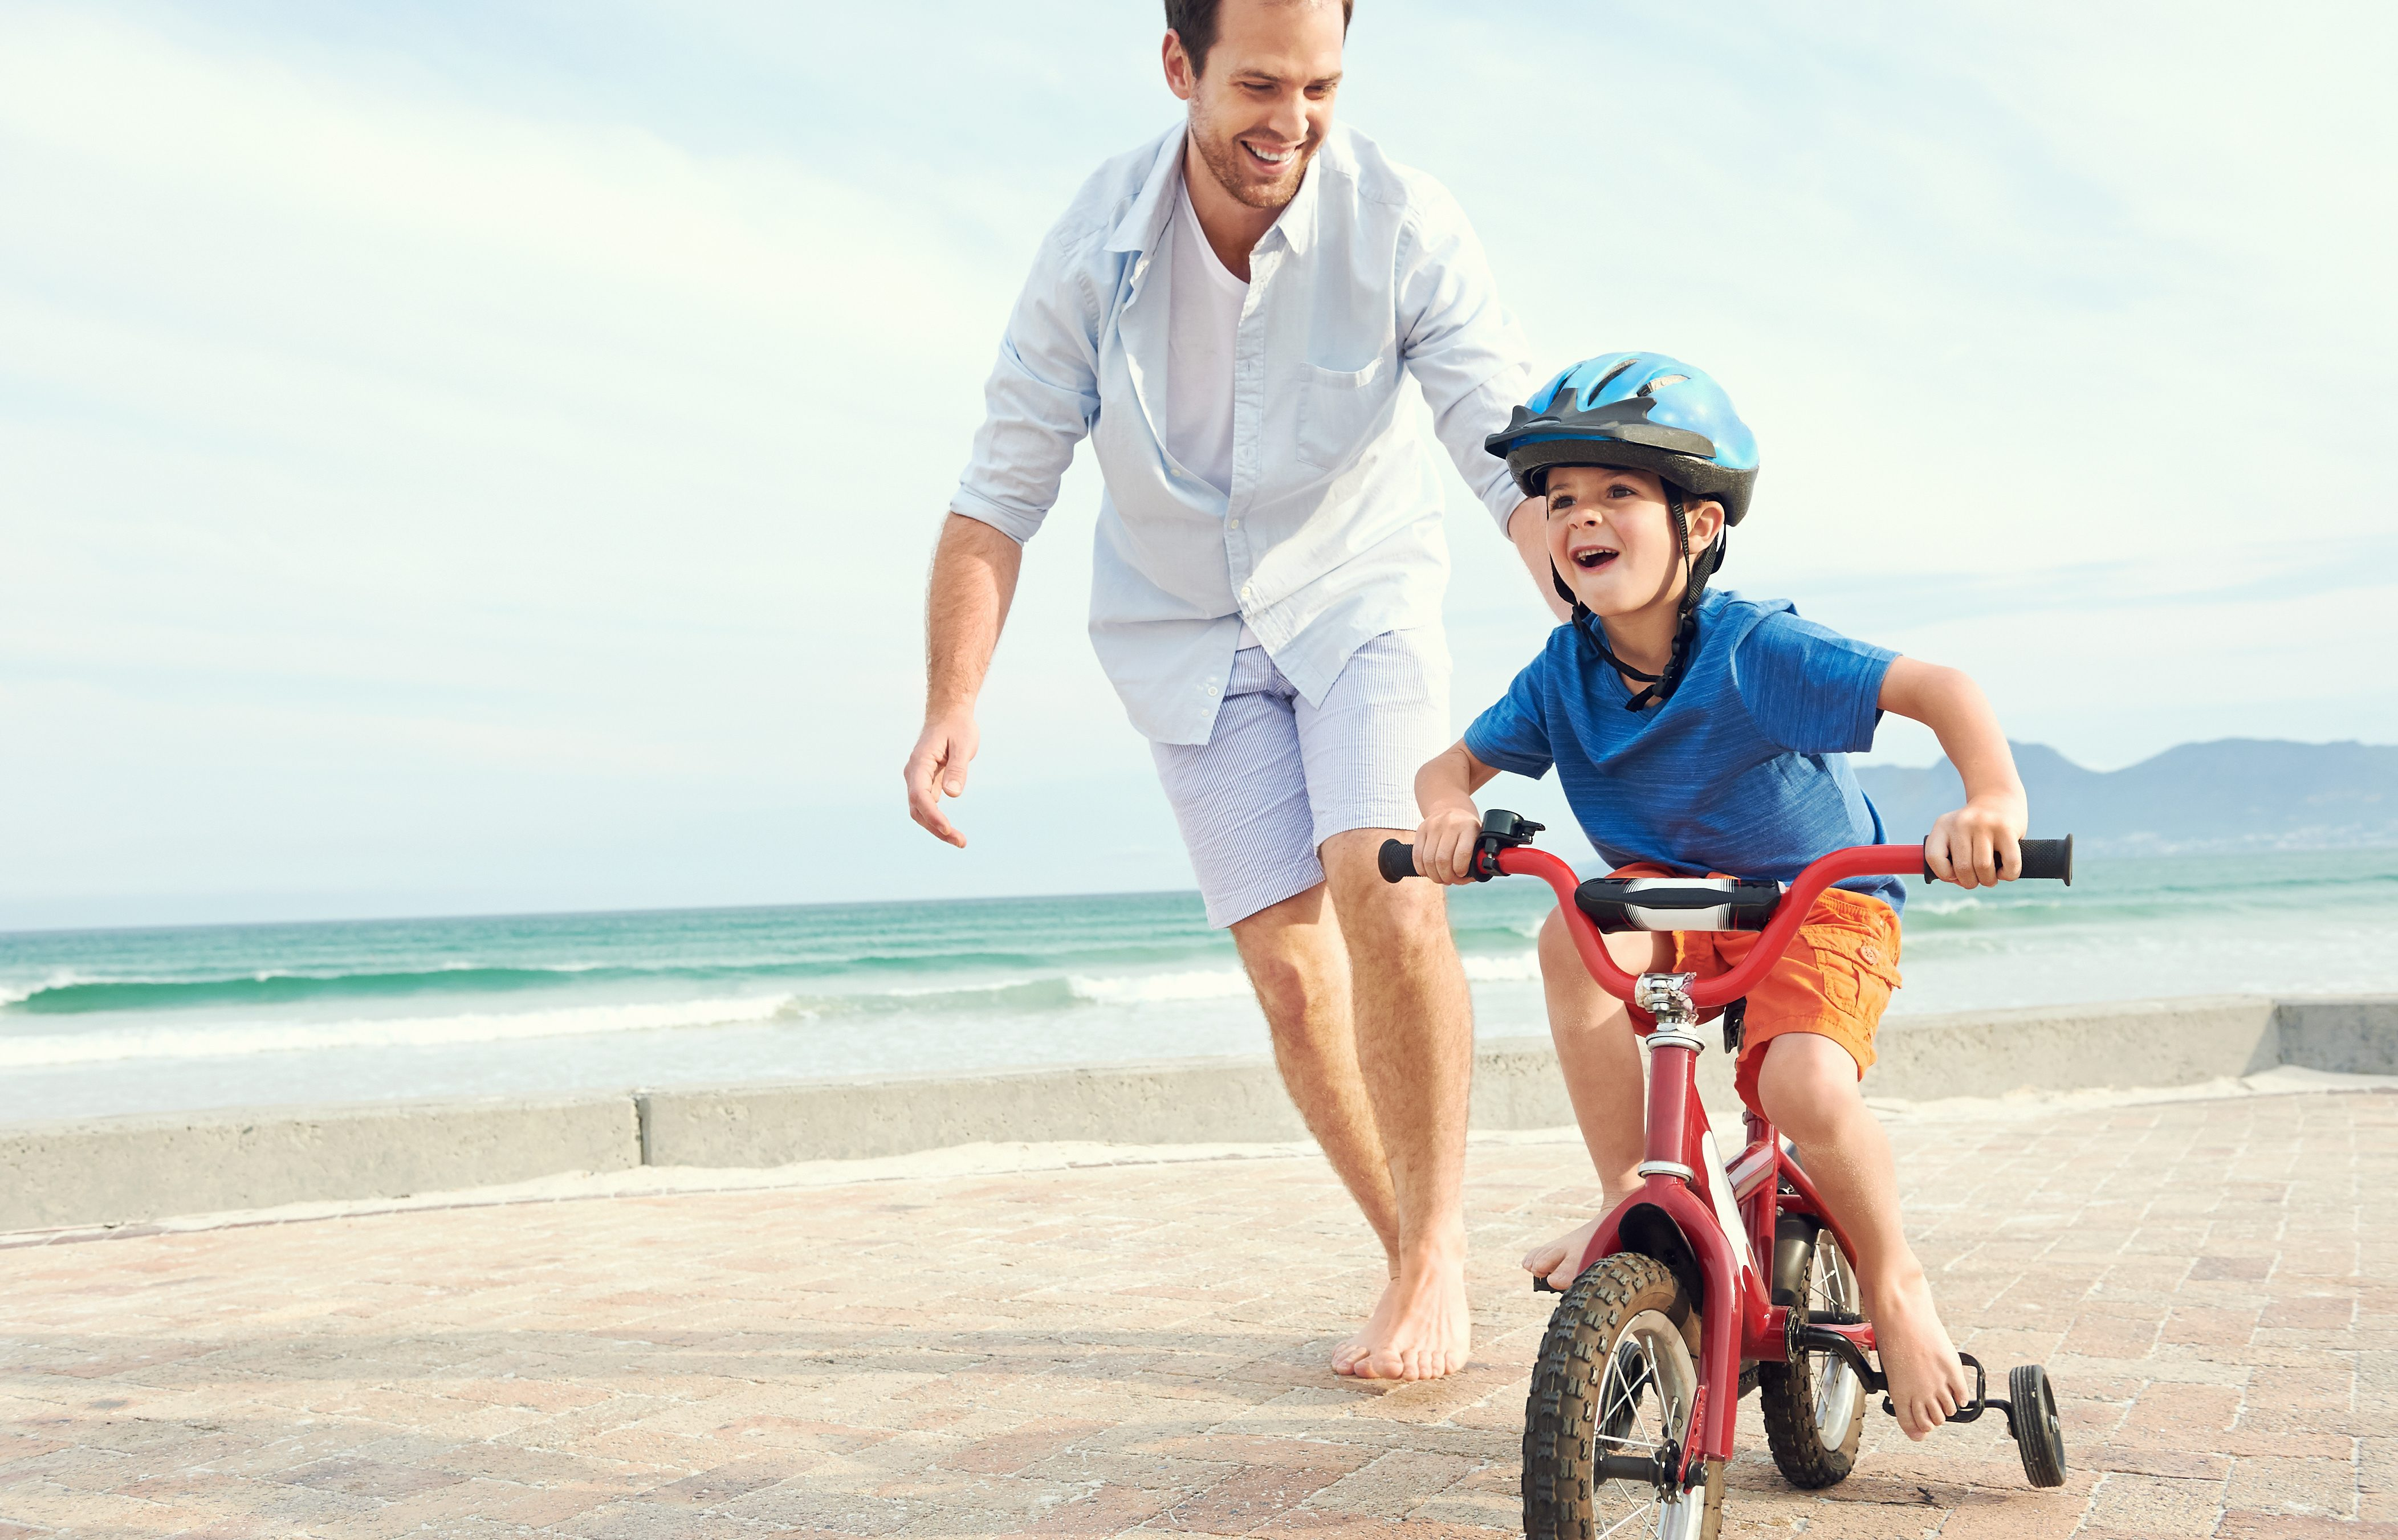 New Publication: Exploring the effect of parental influence on children's physical activity